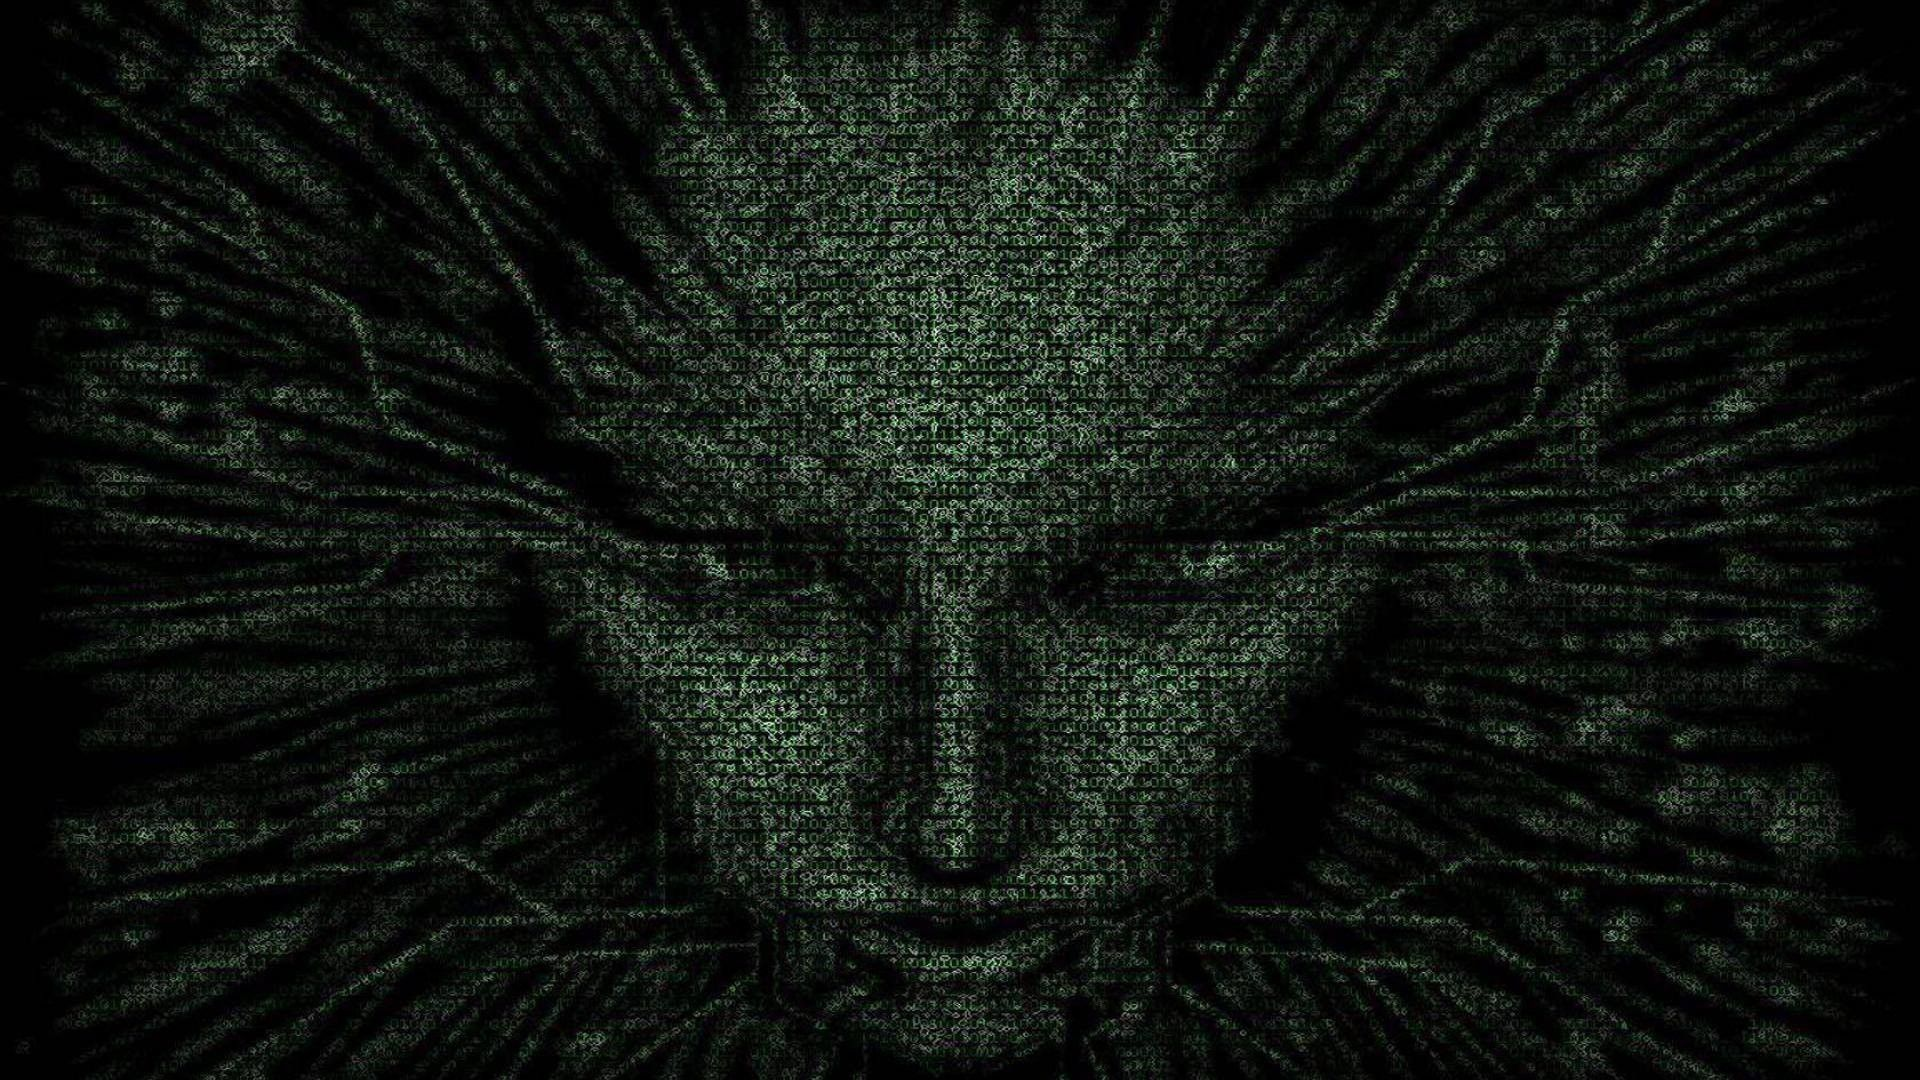 Abstract System Shock 2 Video Games Face Shodan Wallpaper Abstract Wallpaper Abstract Wallpaper